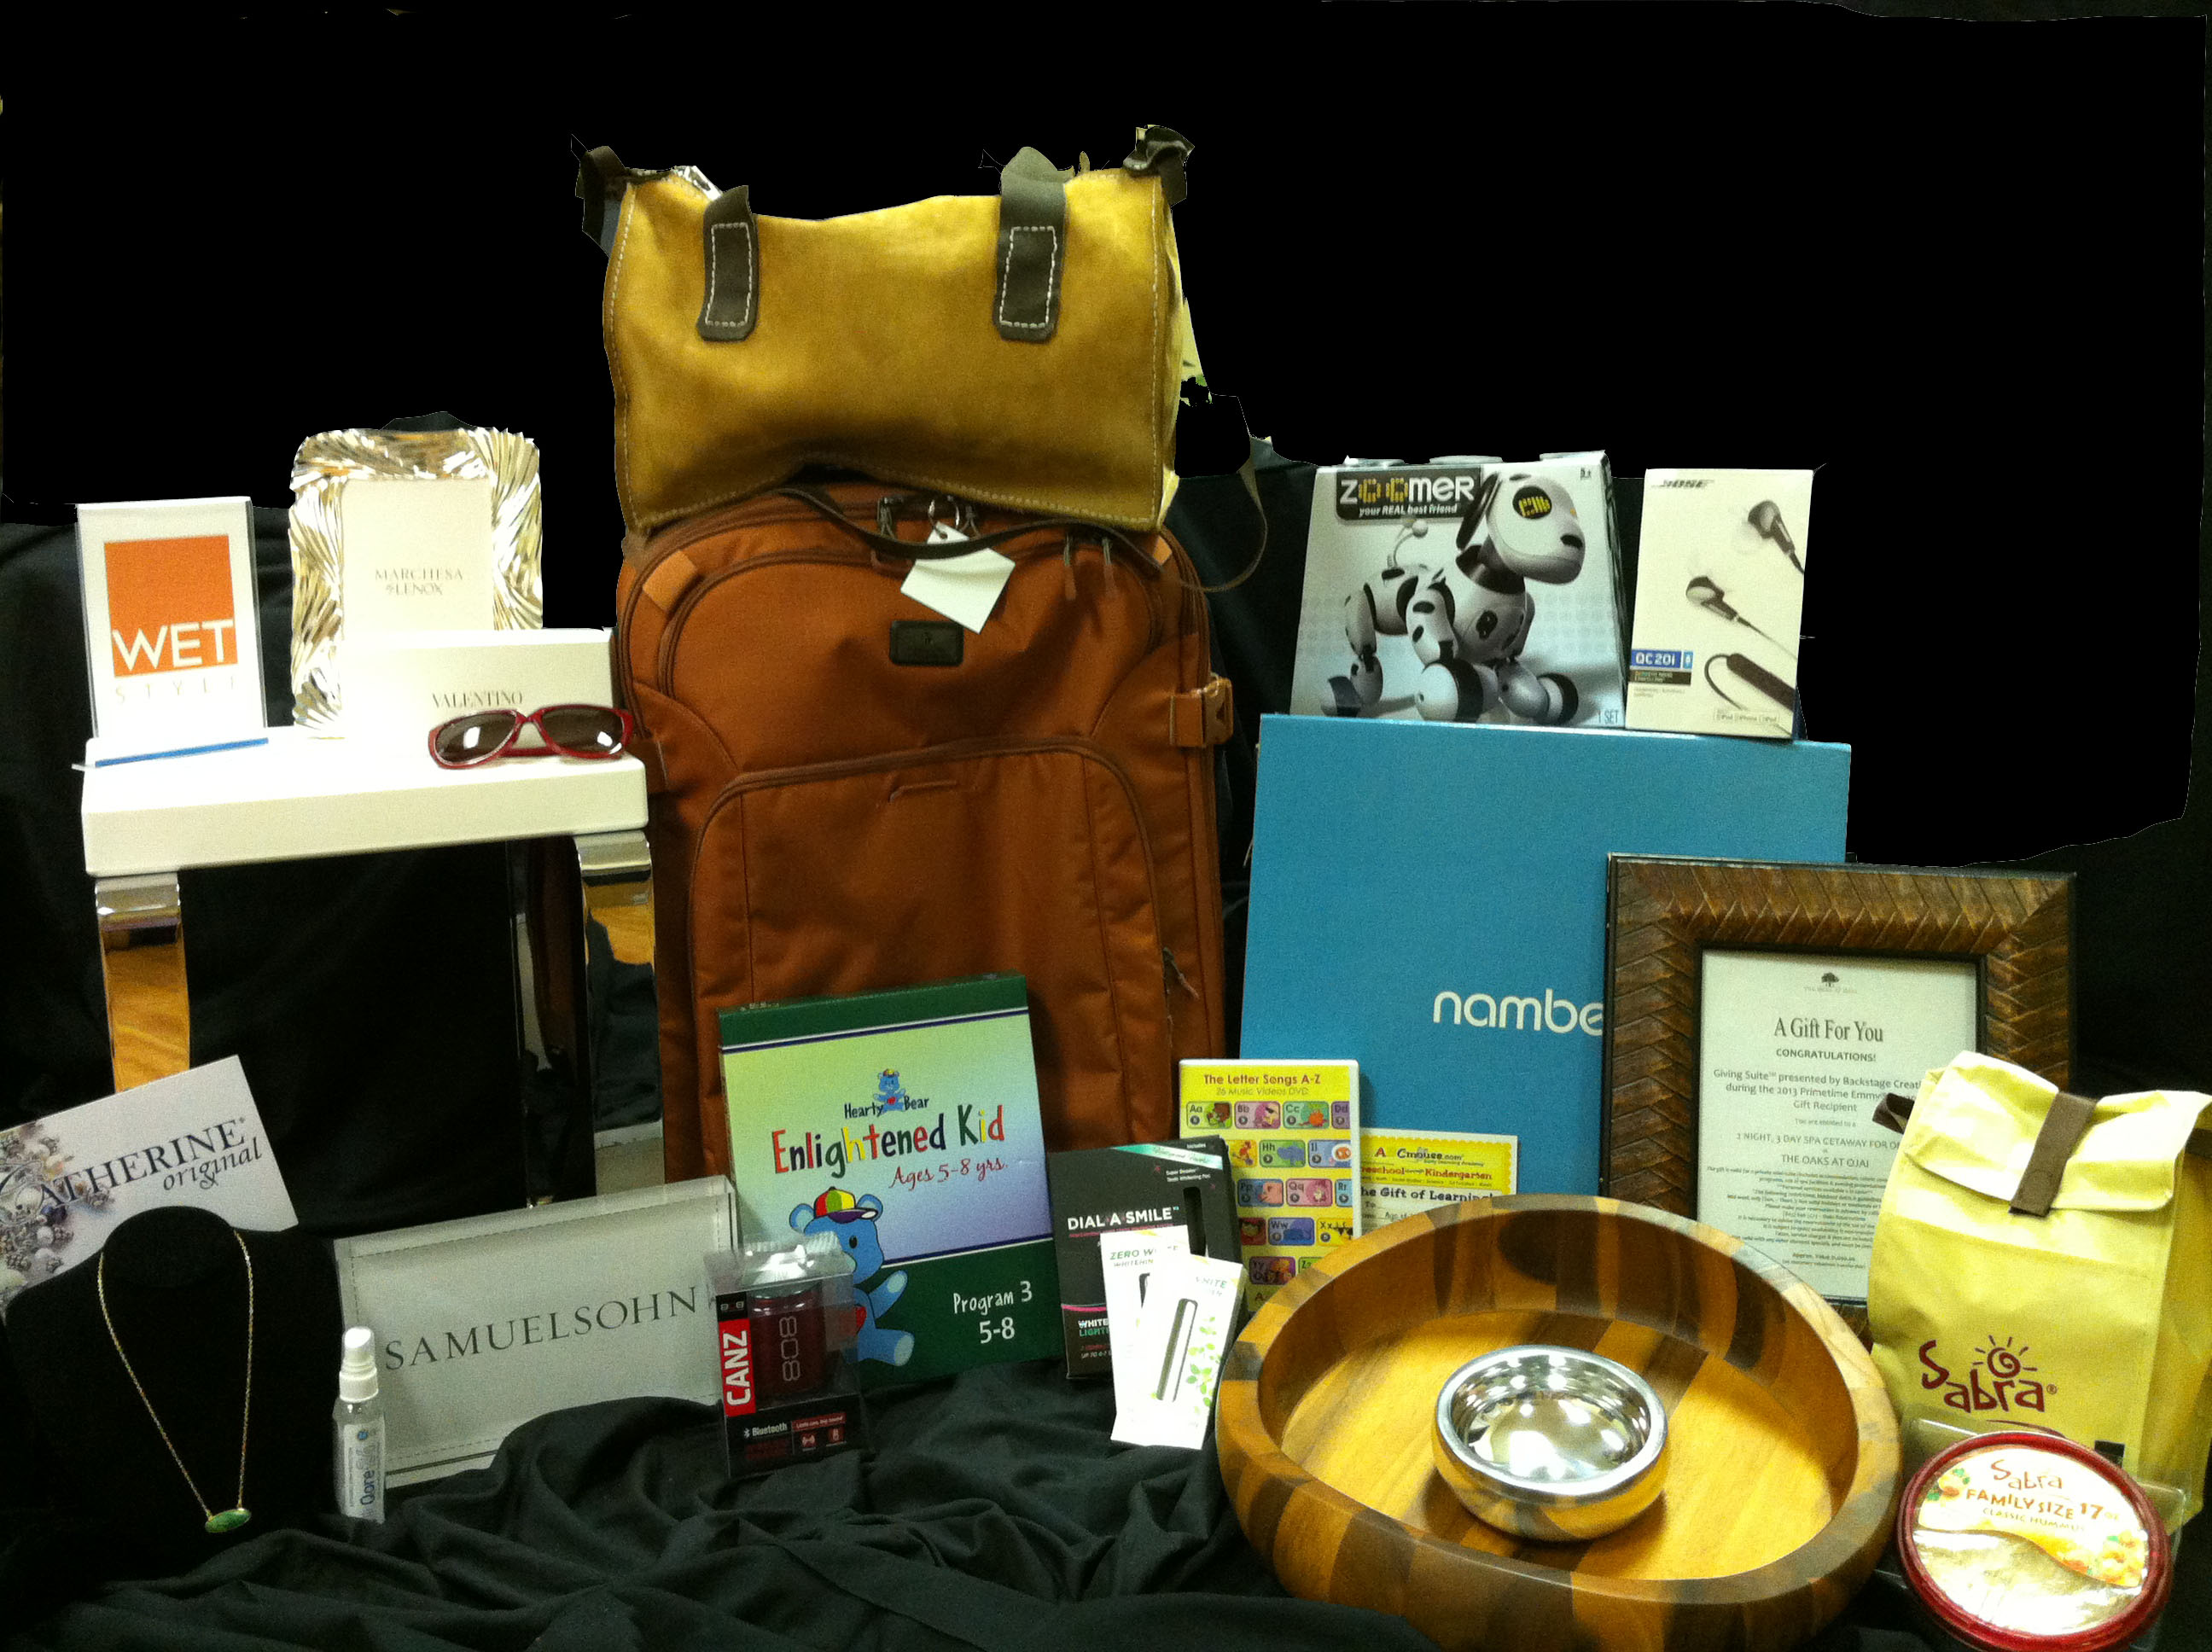 Official Emmys gift bag giveaway at SheKnows.com!